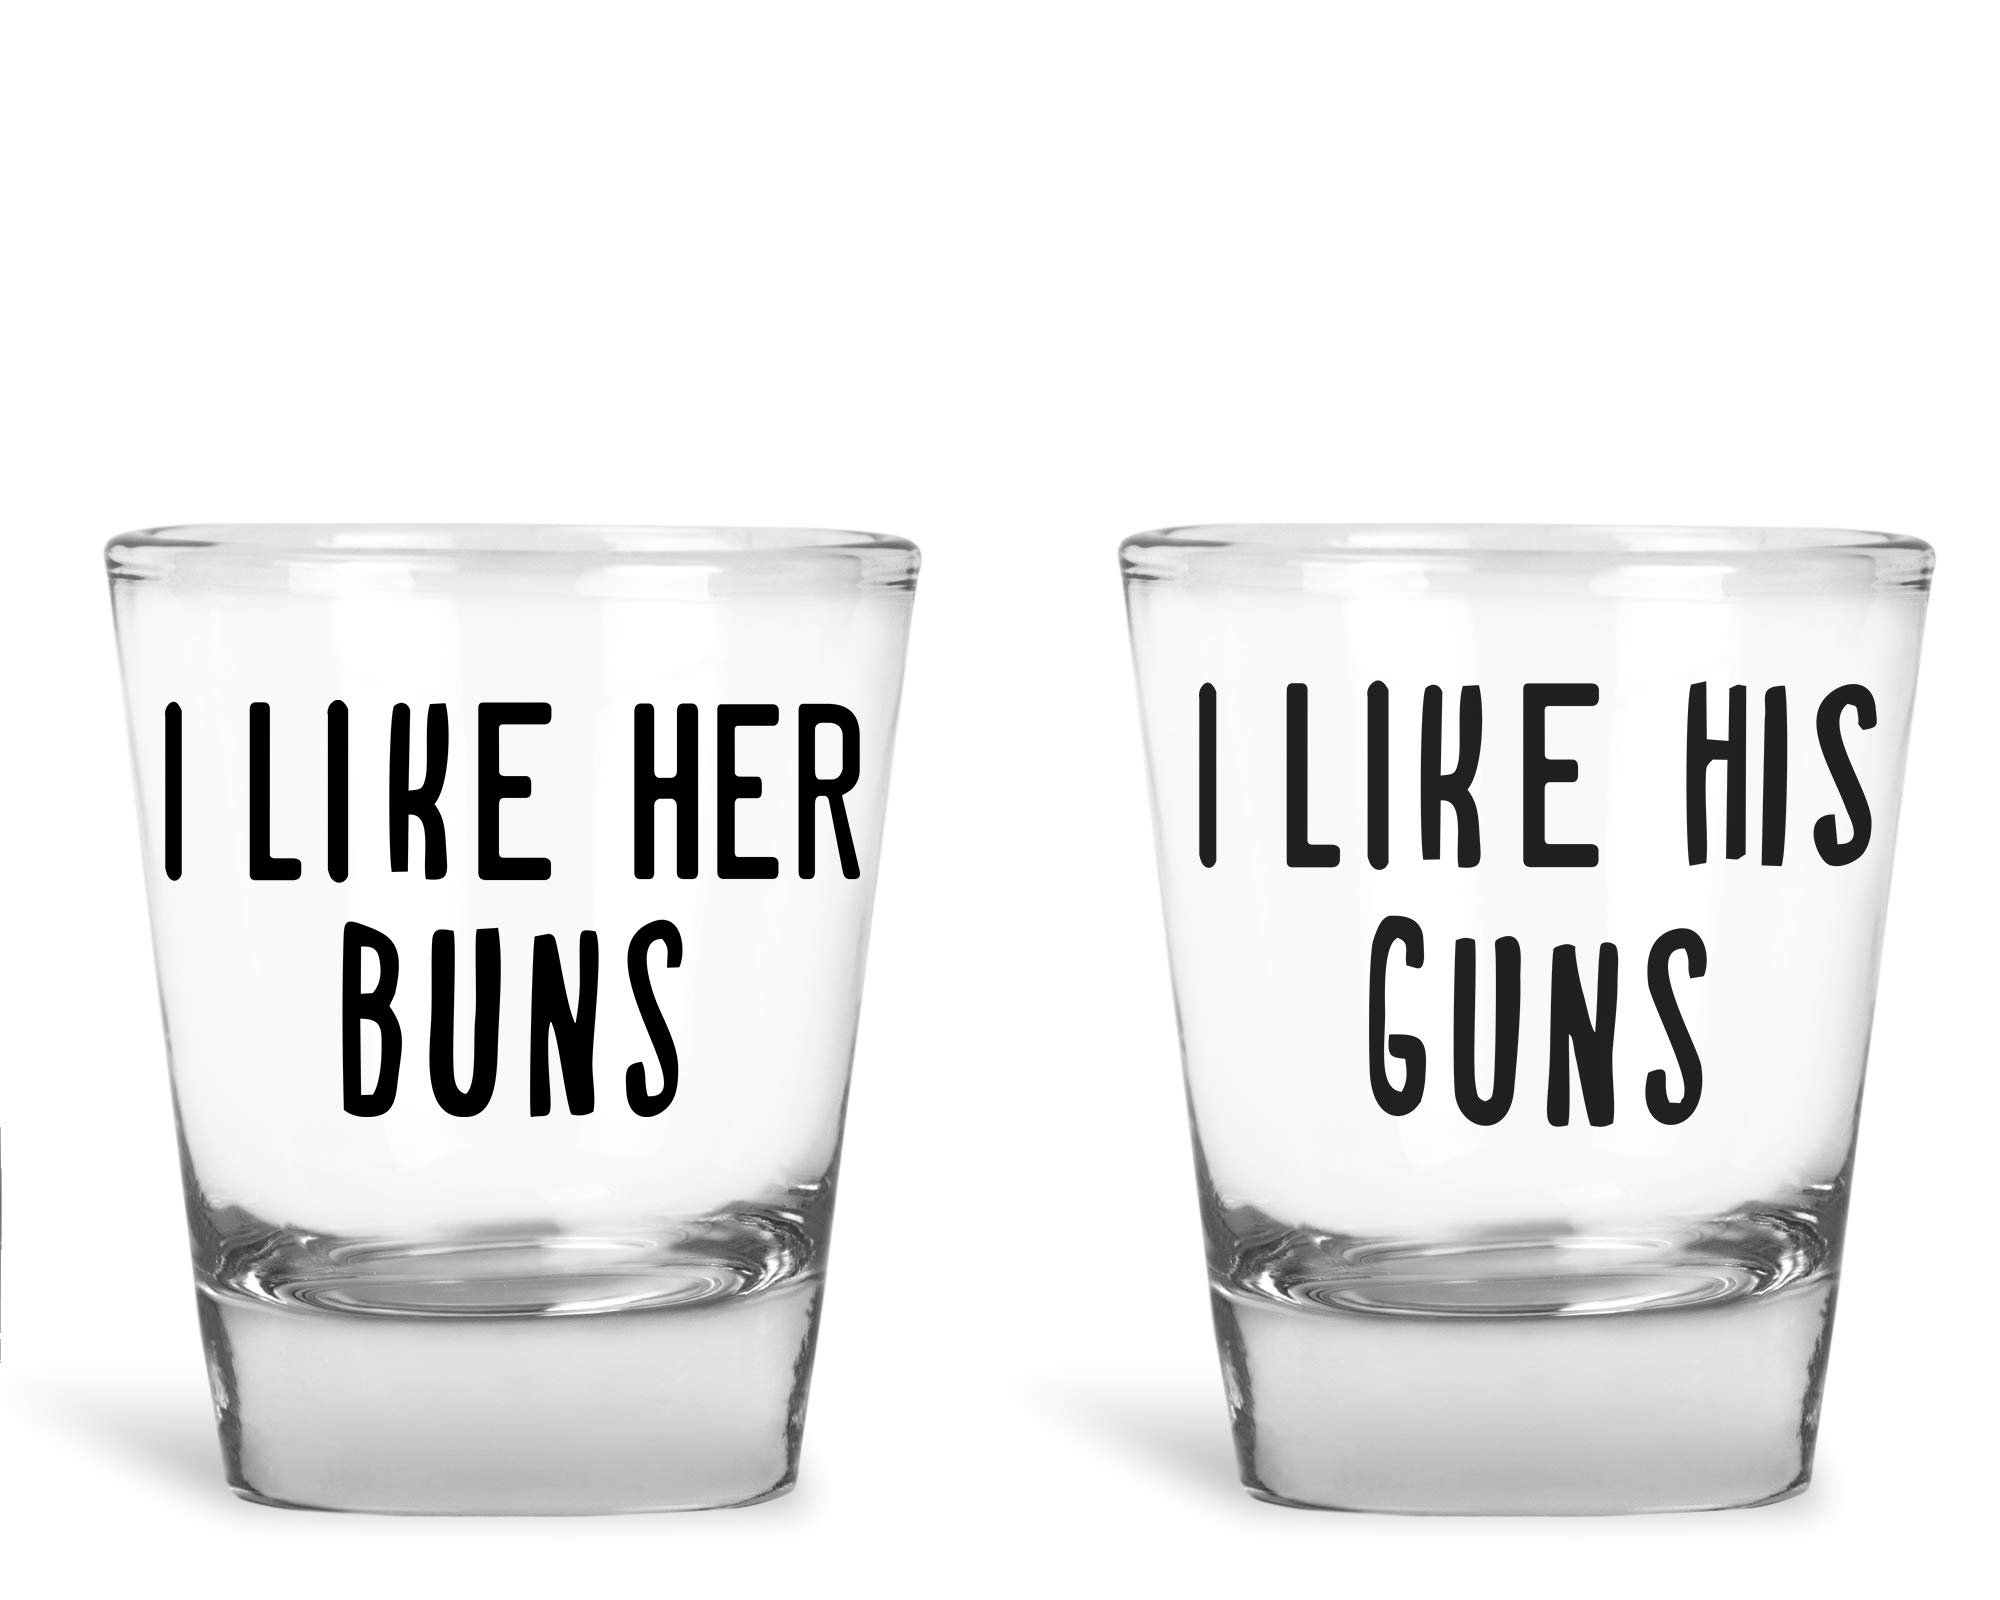 AW Fashions - I Like Her Buns, I Like His Guns - Wedding Gift For Newlyweds Couples - Funny Engagement Or Anniversary Present - 2 Pack Round Set of Shot Glass